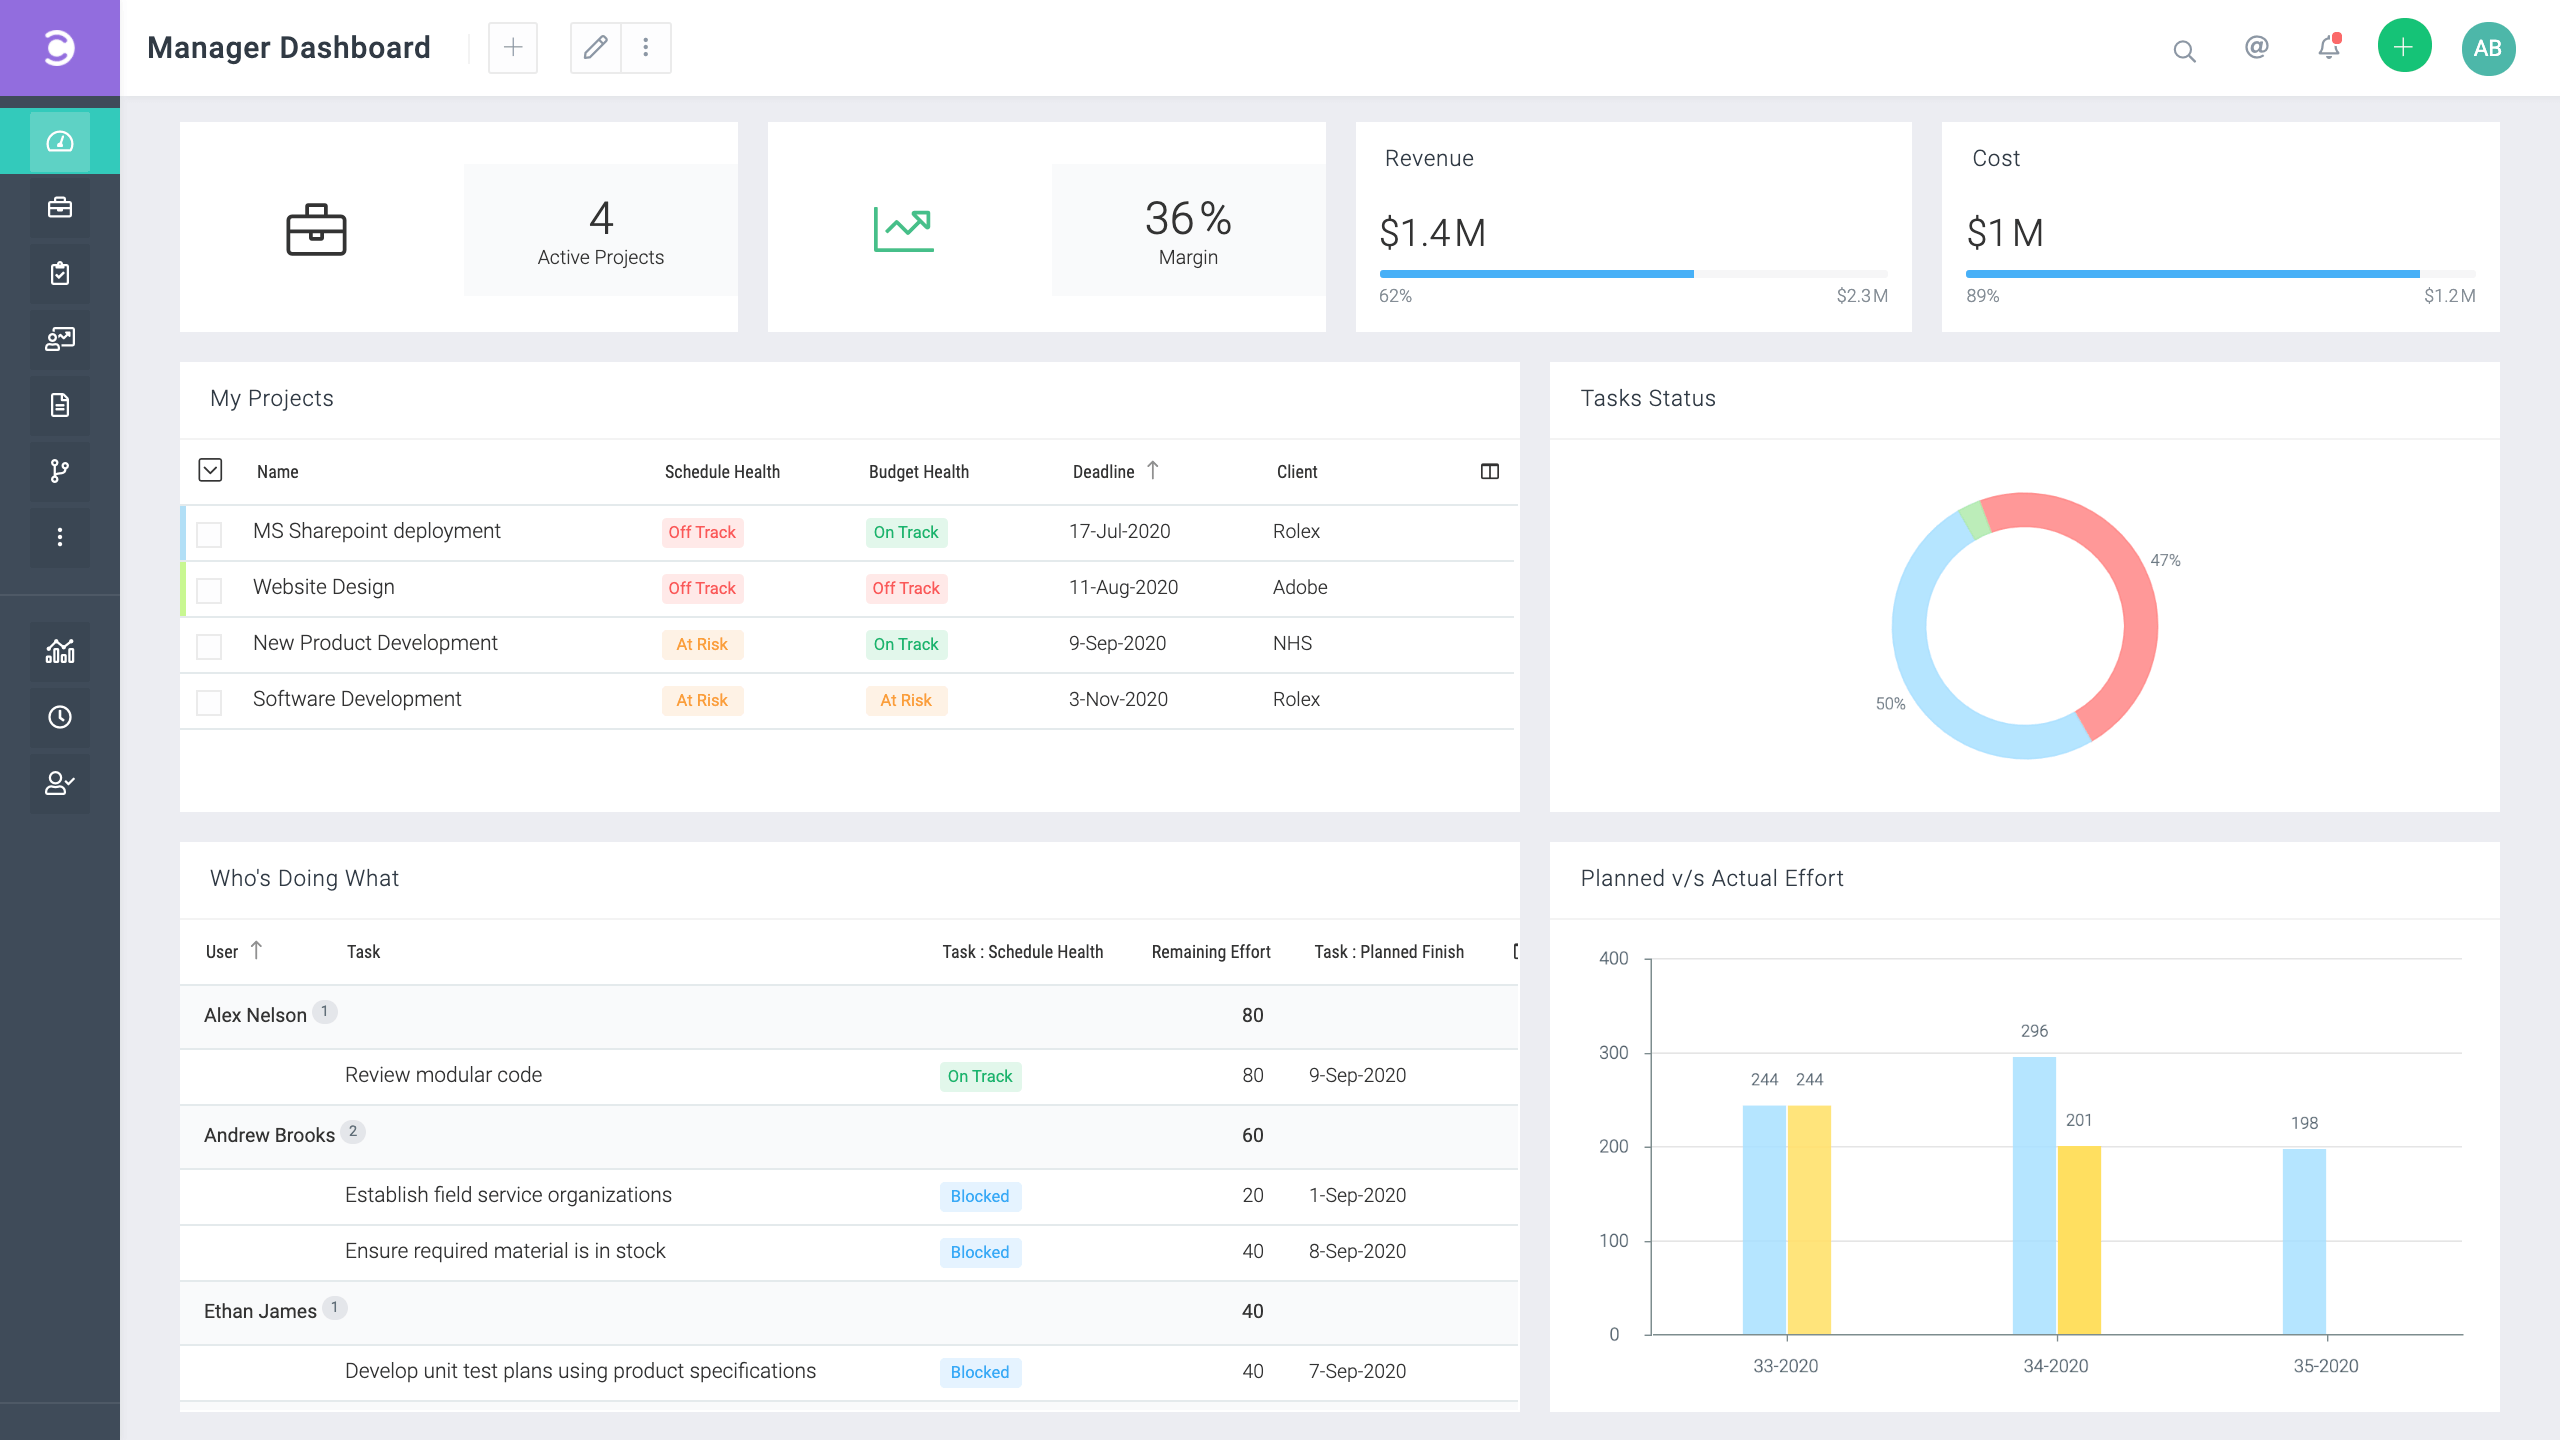 Celoxis-manager-dashboard (2)